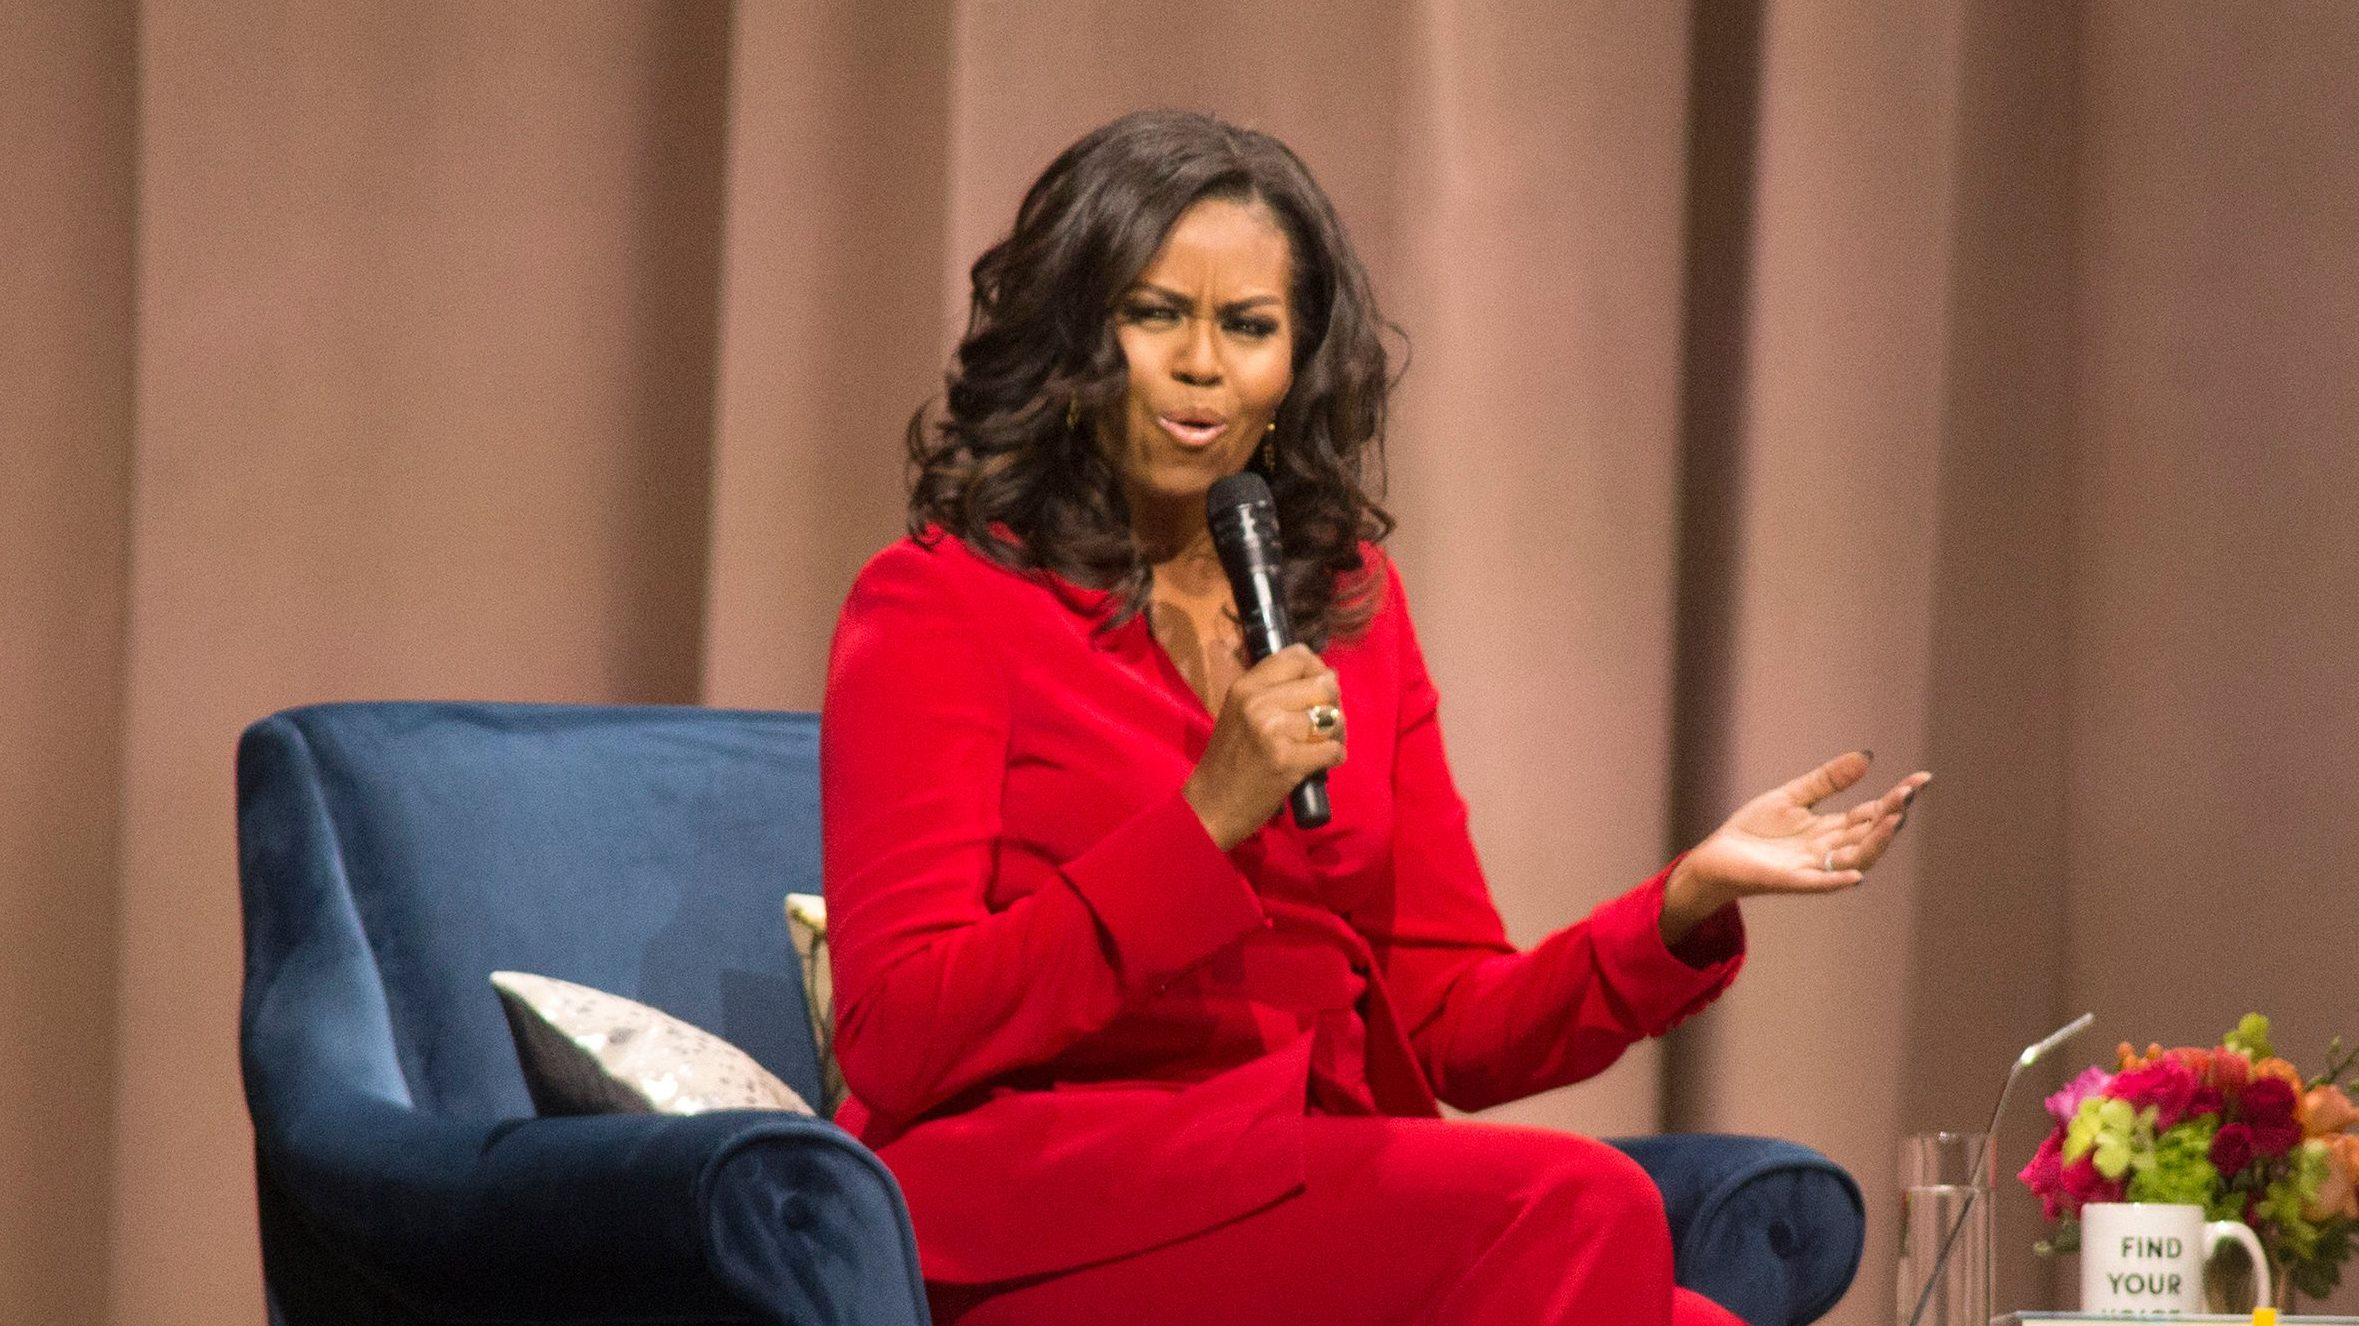 Michelle Obama has advice for dealing with imposter ...